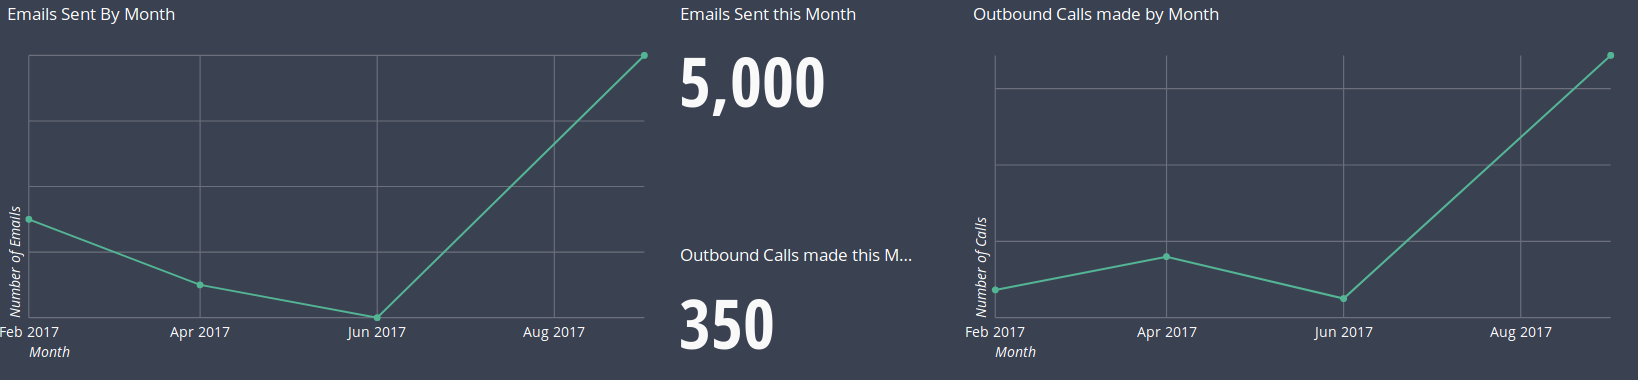 emails and calls by month